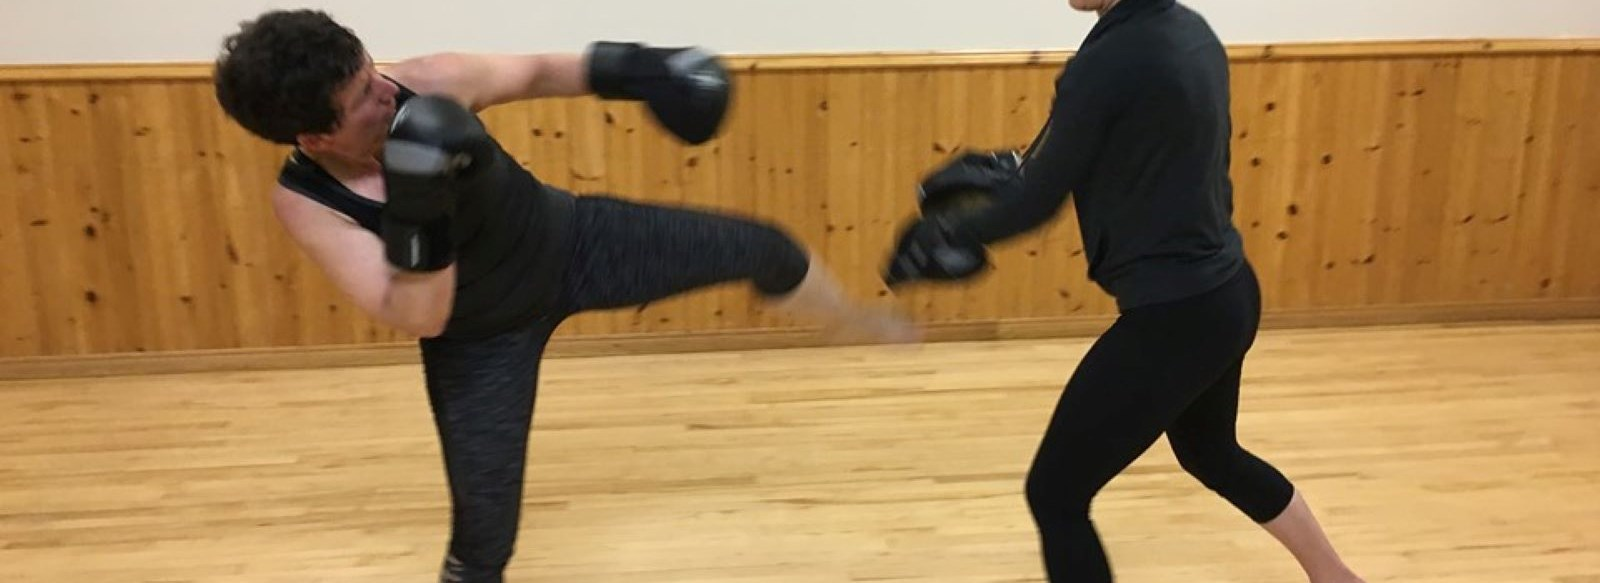 Picture of Kickboxing